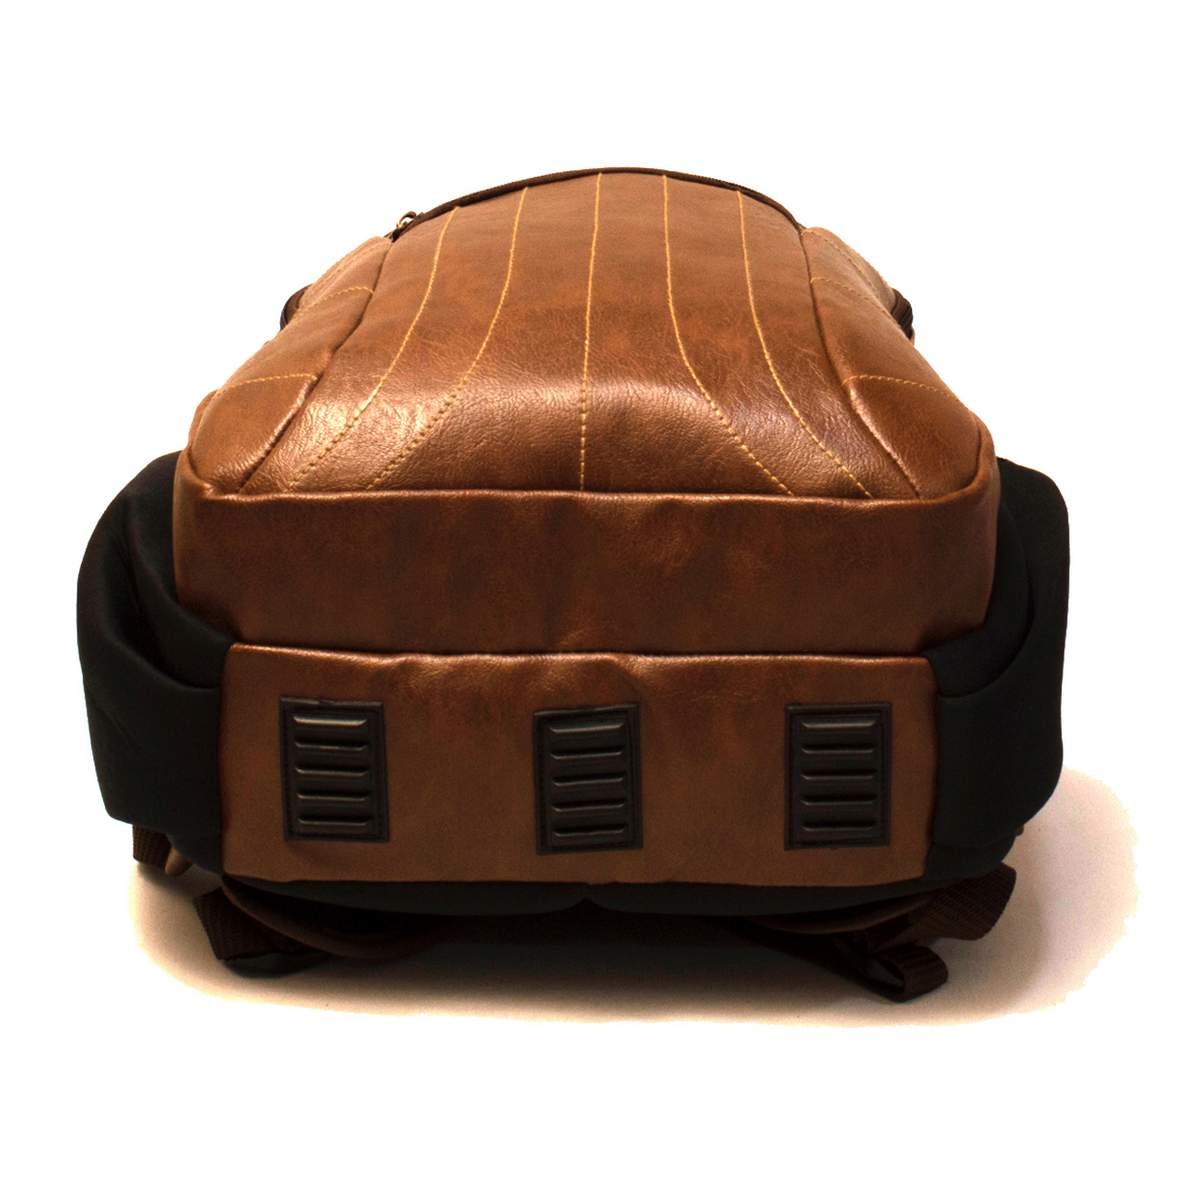 Brogues Athlone Tan Leather Laptop Backpack Bag - Sunrise Trading Co ... 4bcd746cadd6c